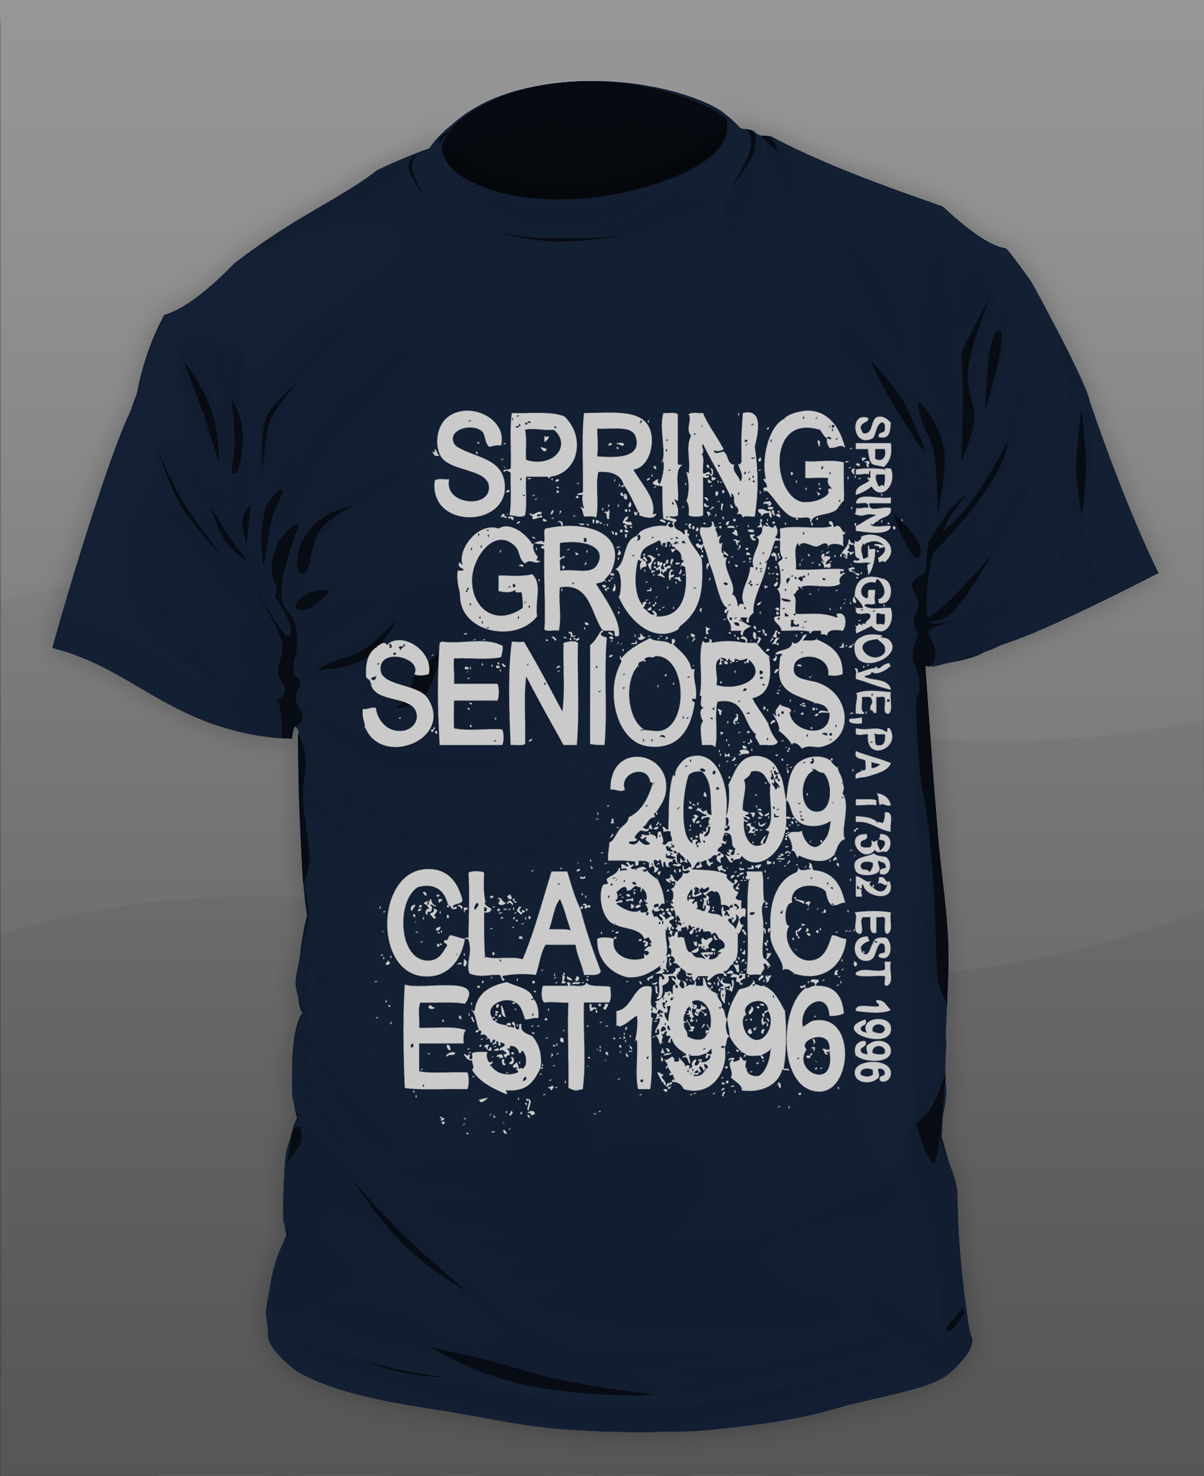 senior class tshirt design by gkgfx designs interfaces fashion t shirt